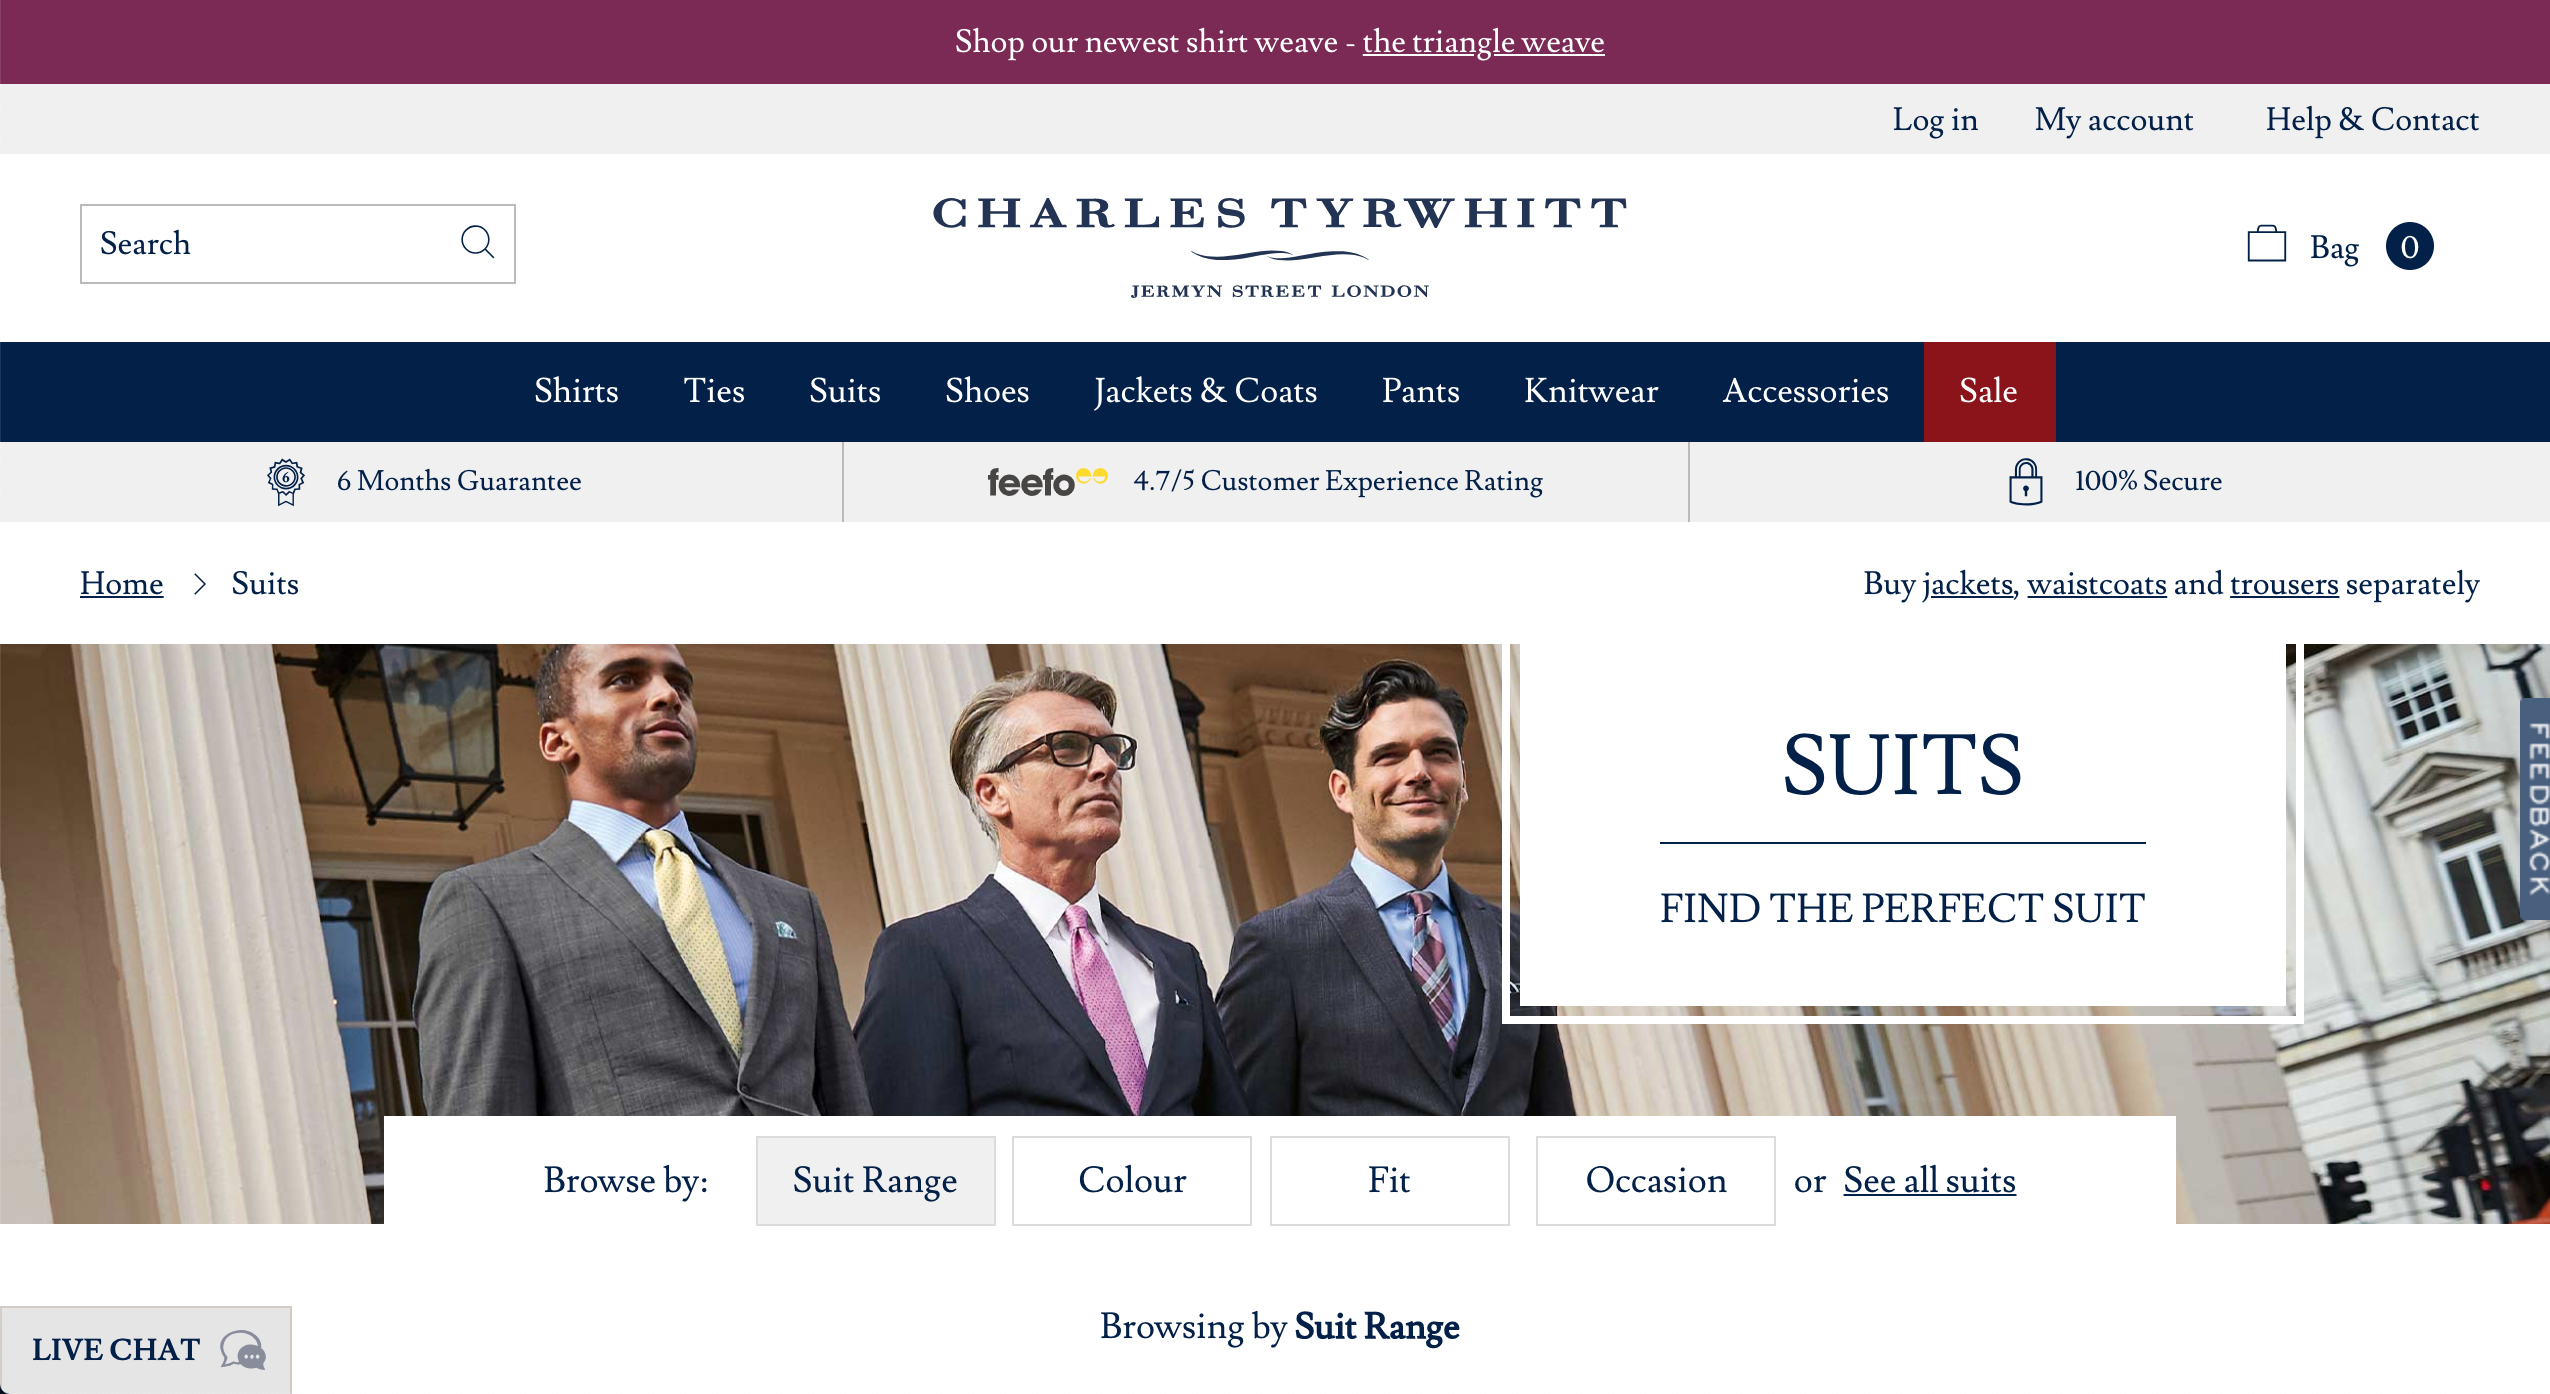 Charles Tyrwhitt suits page